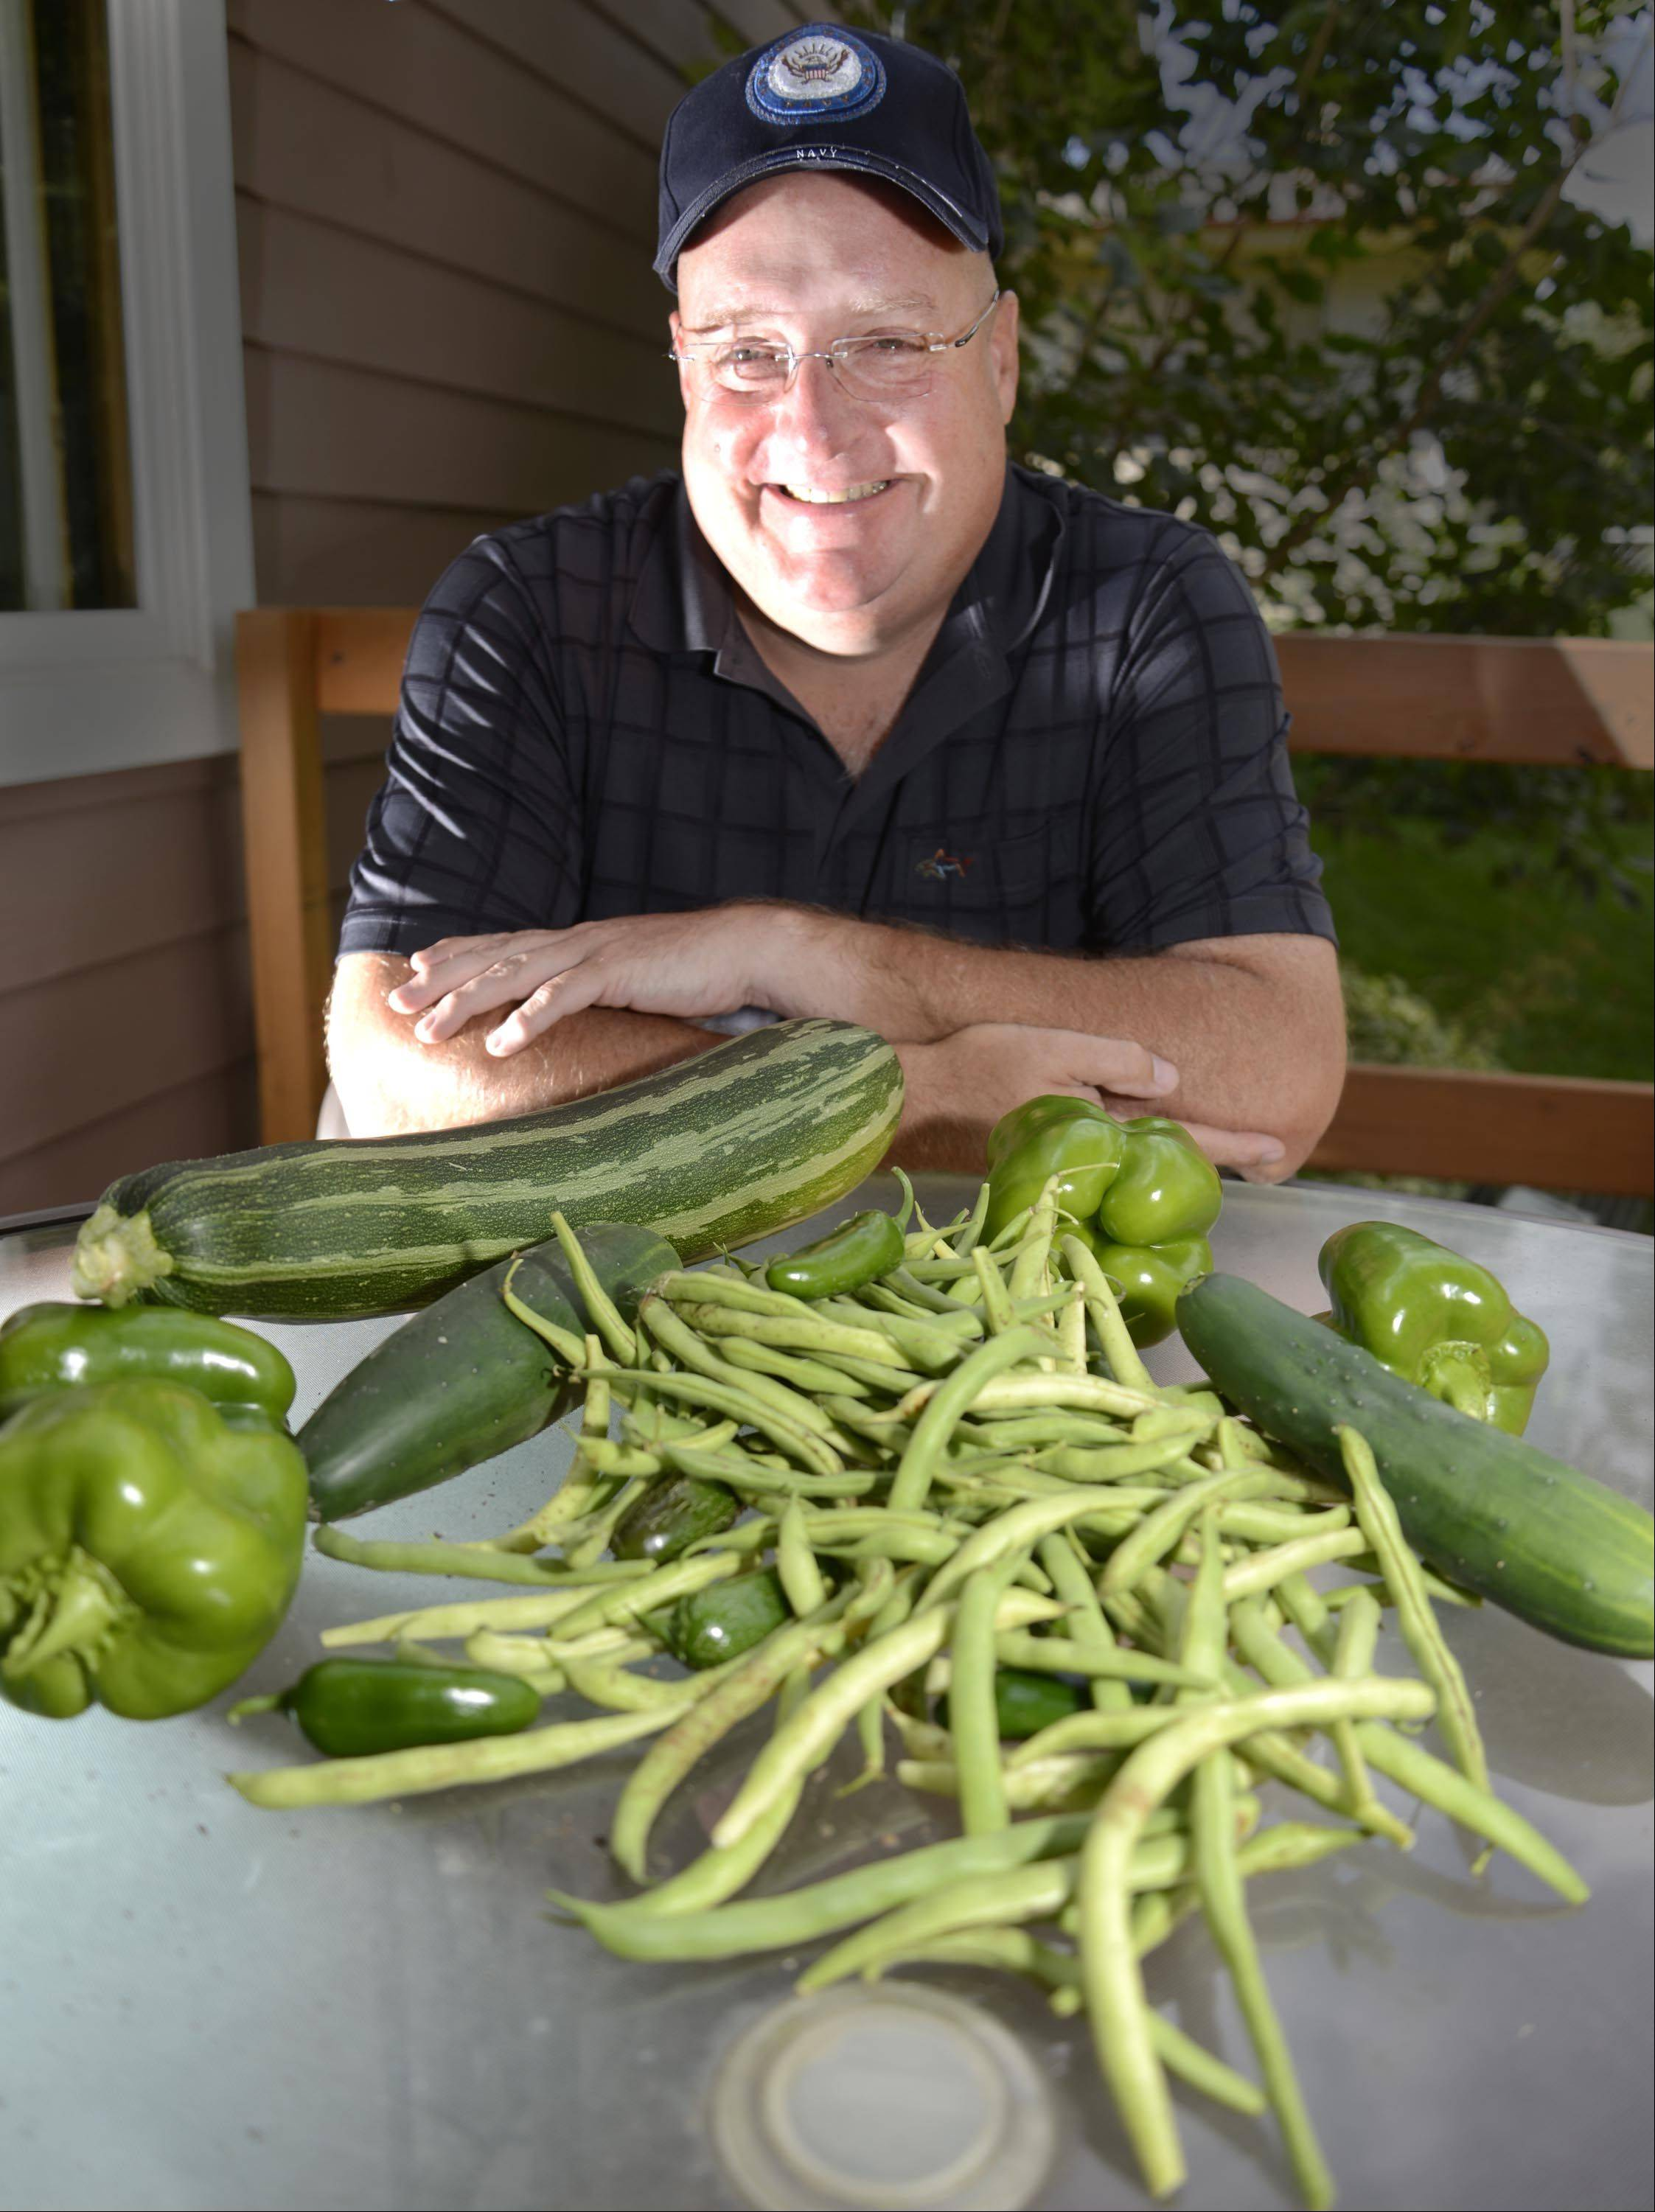 Cook of the Week Challenge competitor Dan Rich, of Elgin, counts fresh vegetables from his garden as his favorite ingredient.